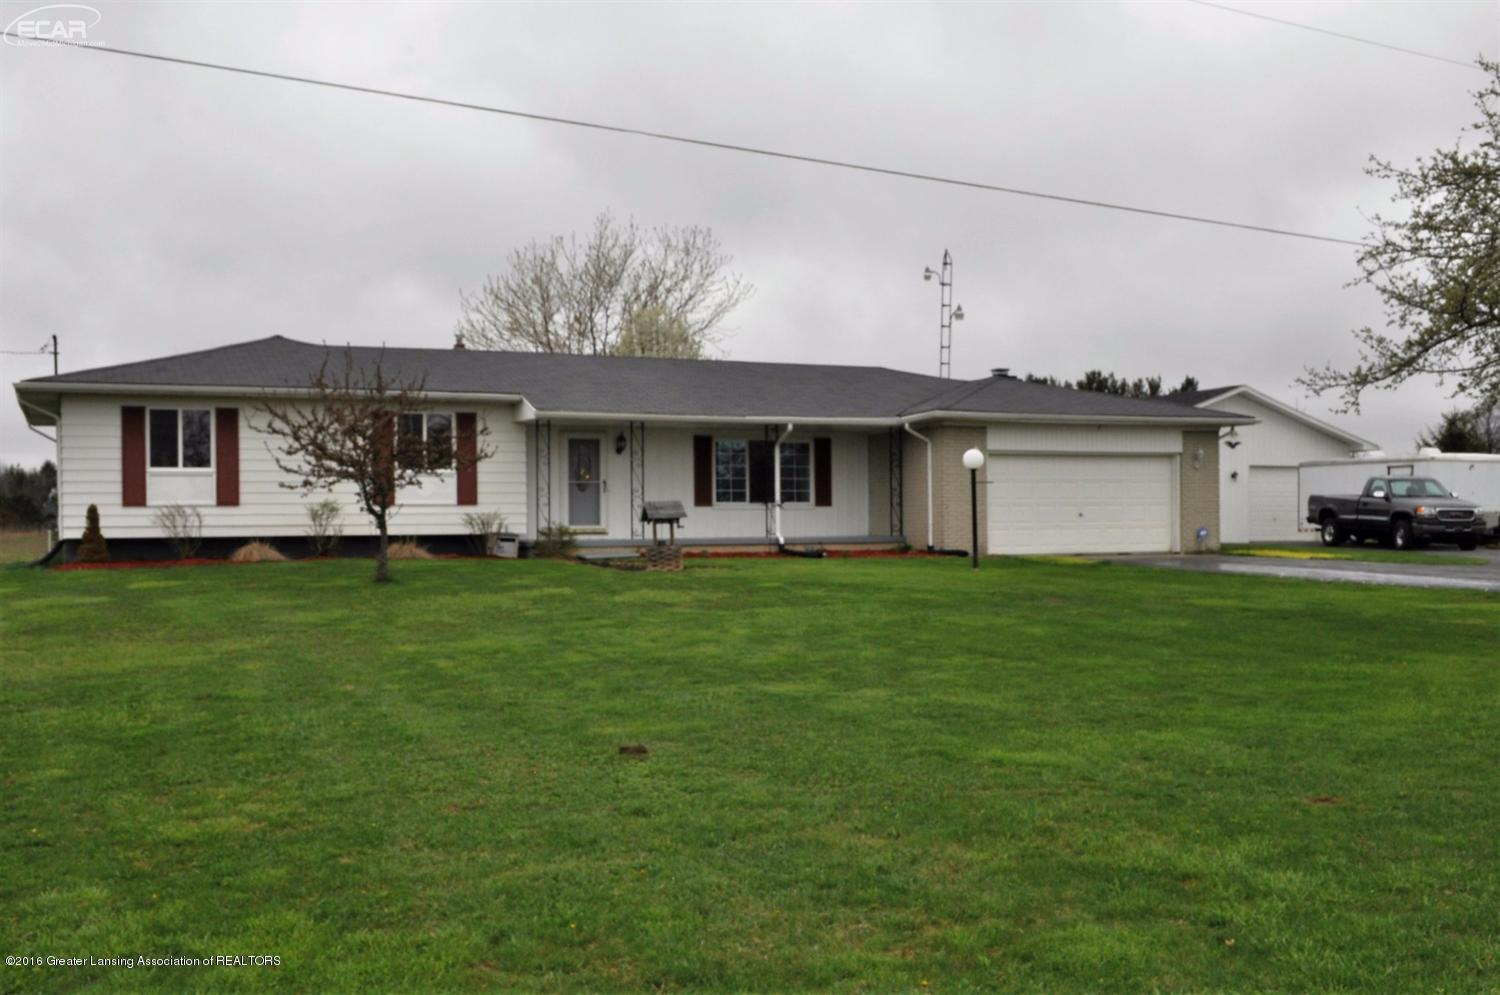 4410 S Duffield Rd - 4410 Duffield pic - 1